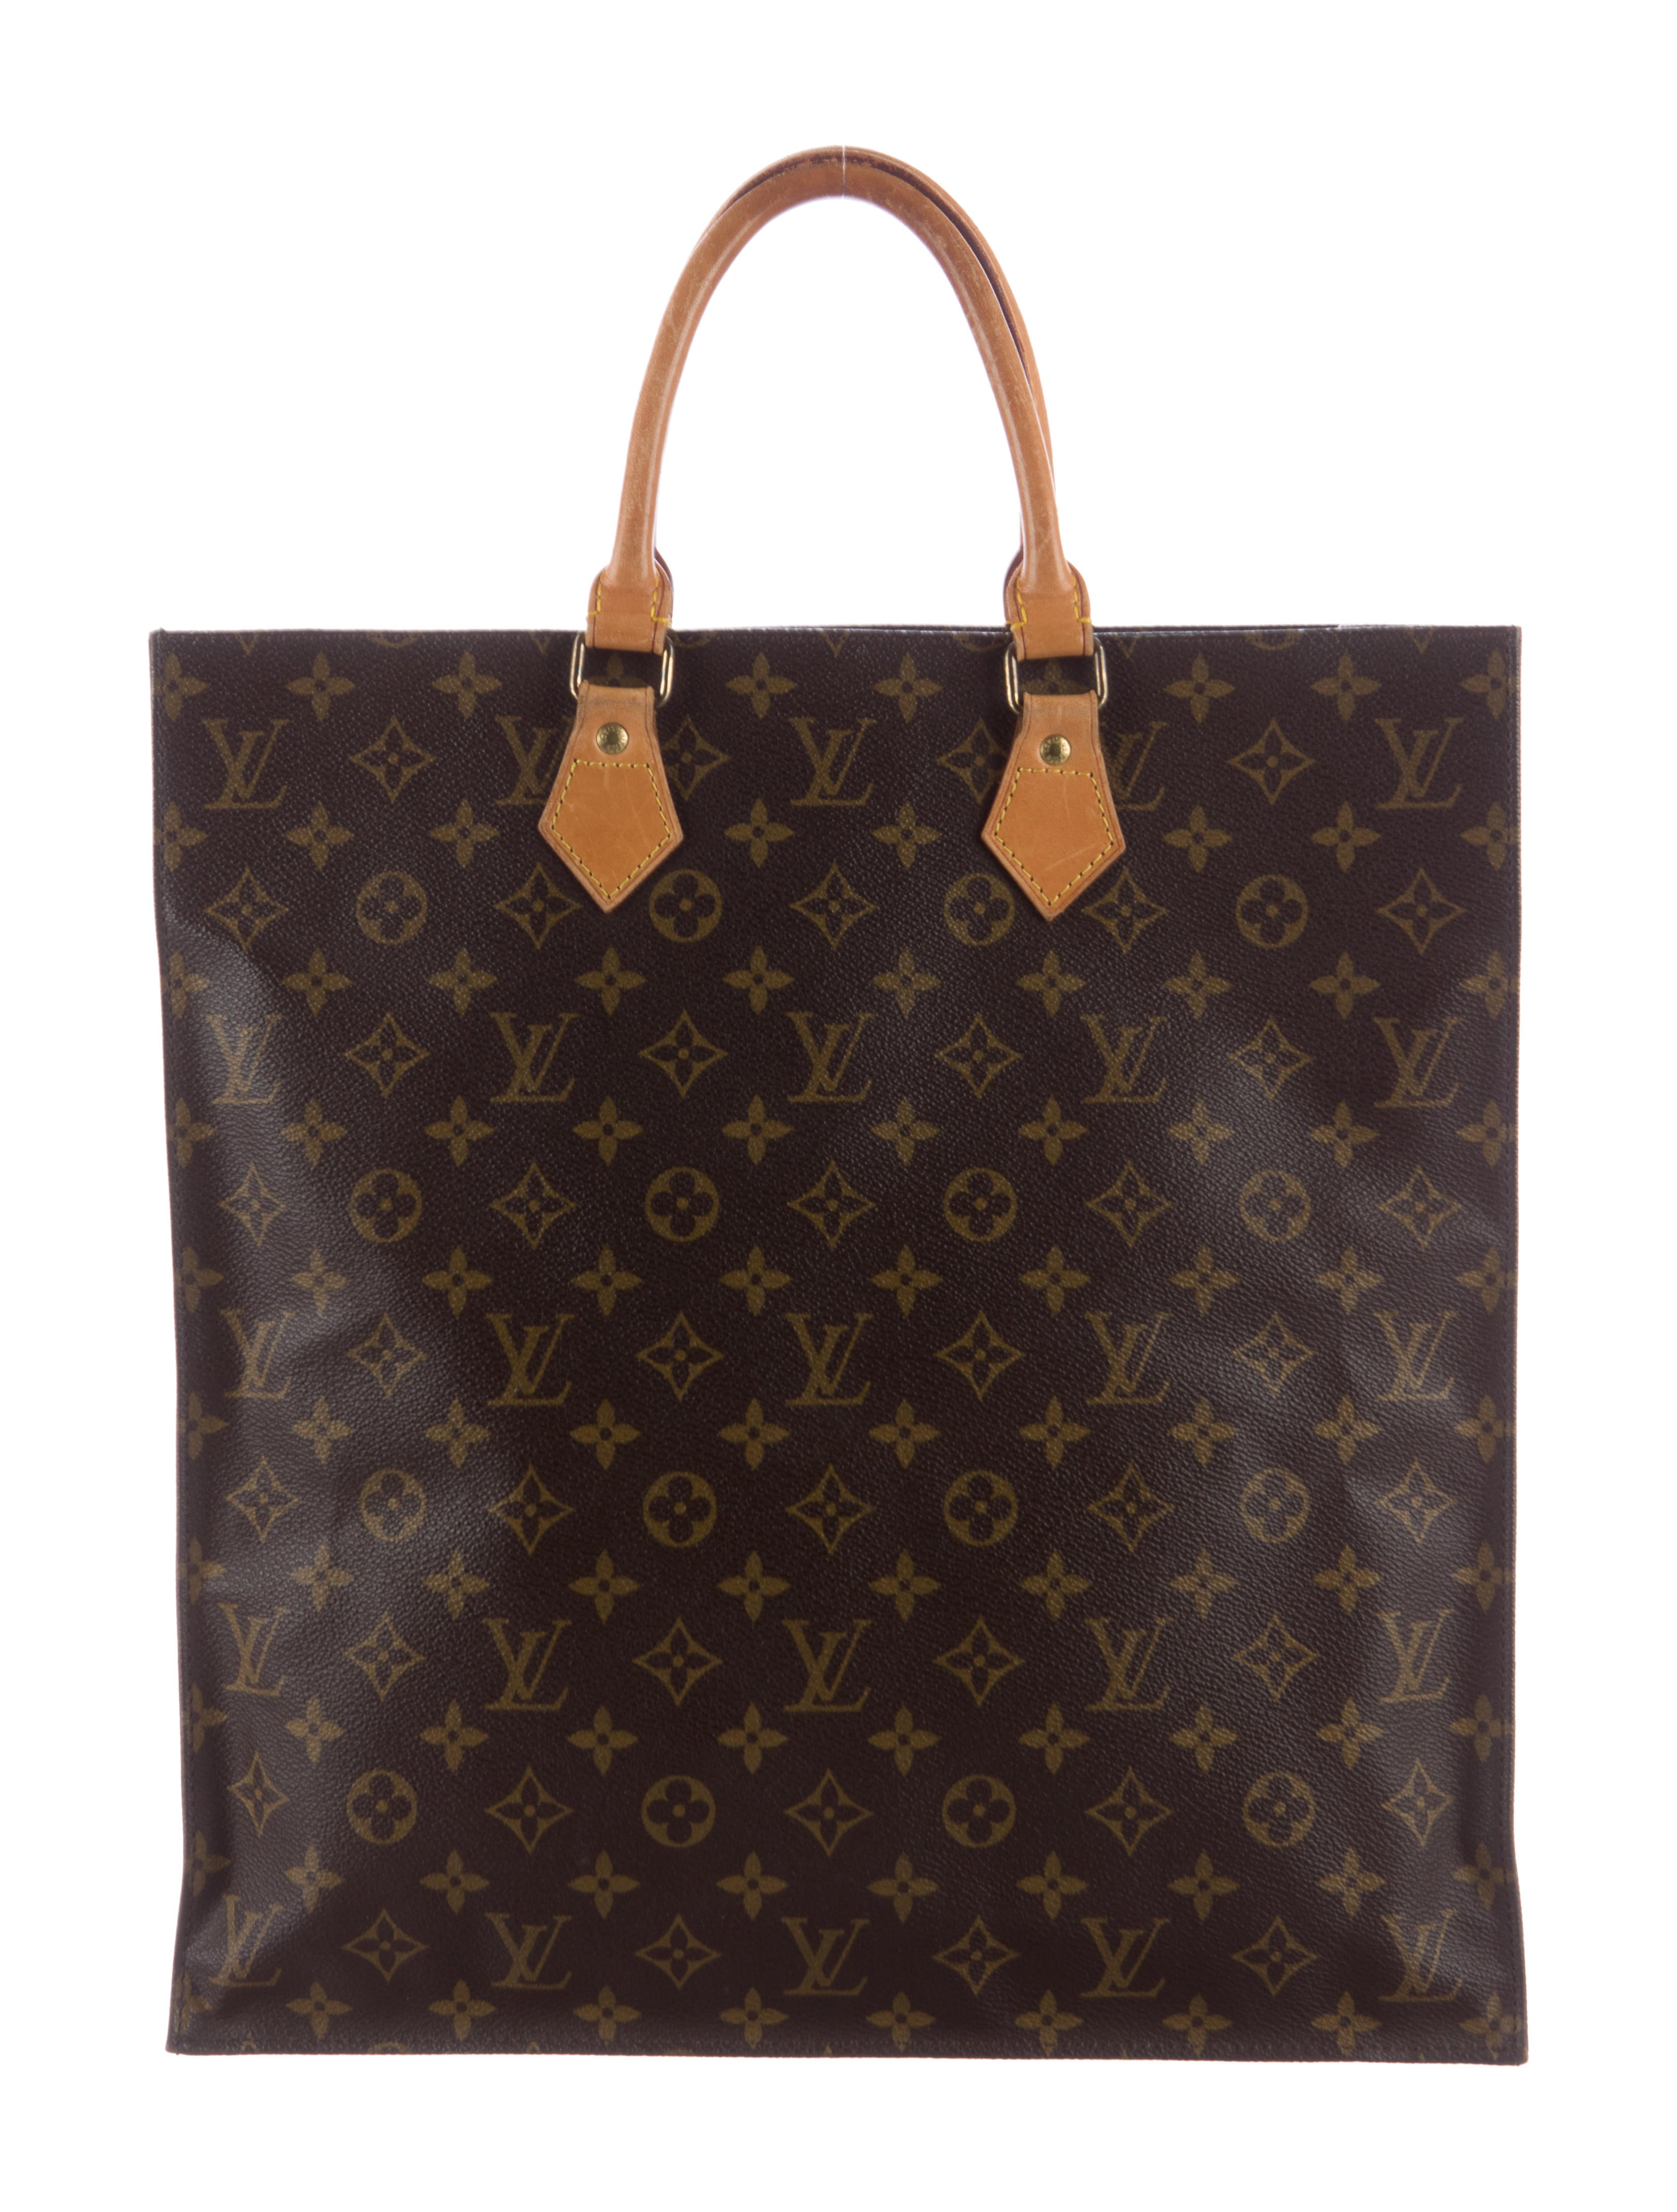 Louis vuitton monogram sac plat bags lou119905 the for Louis vuitton monogram miroir sac plat